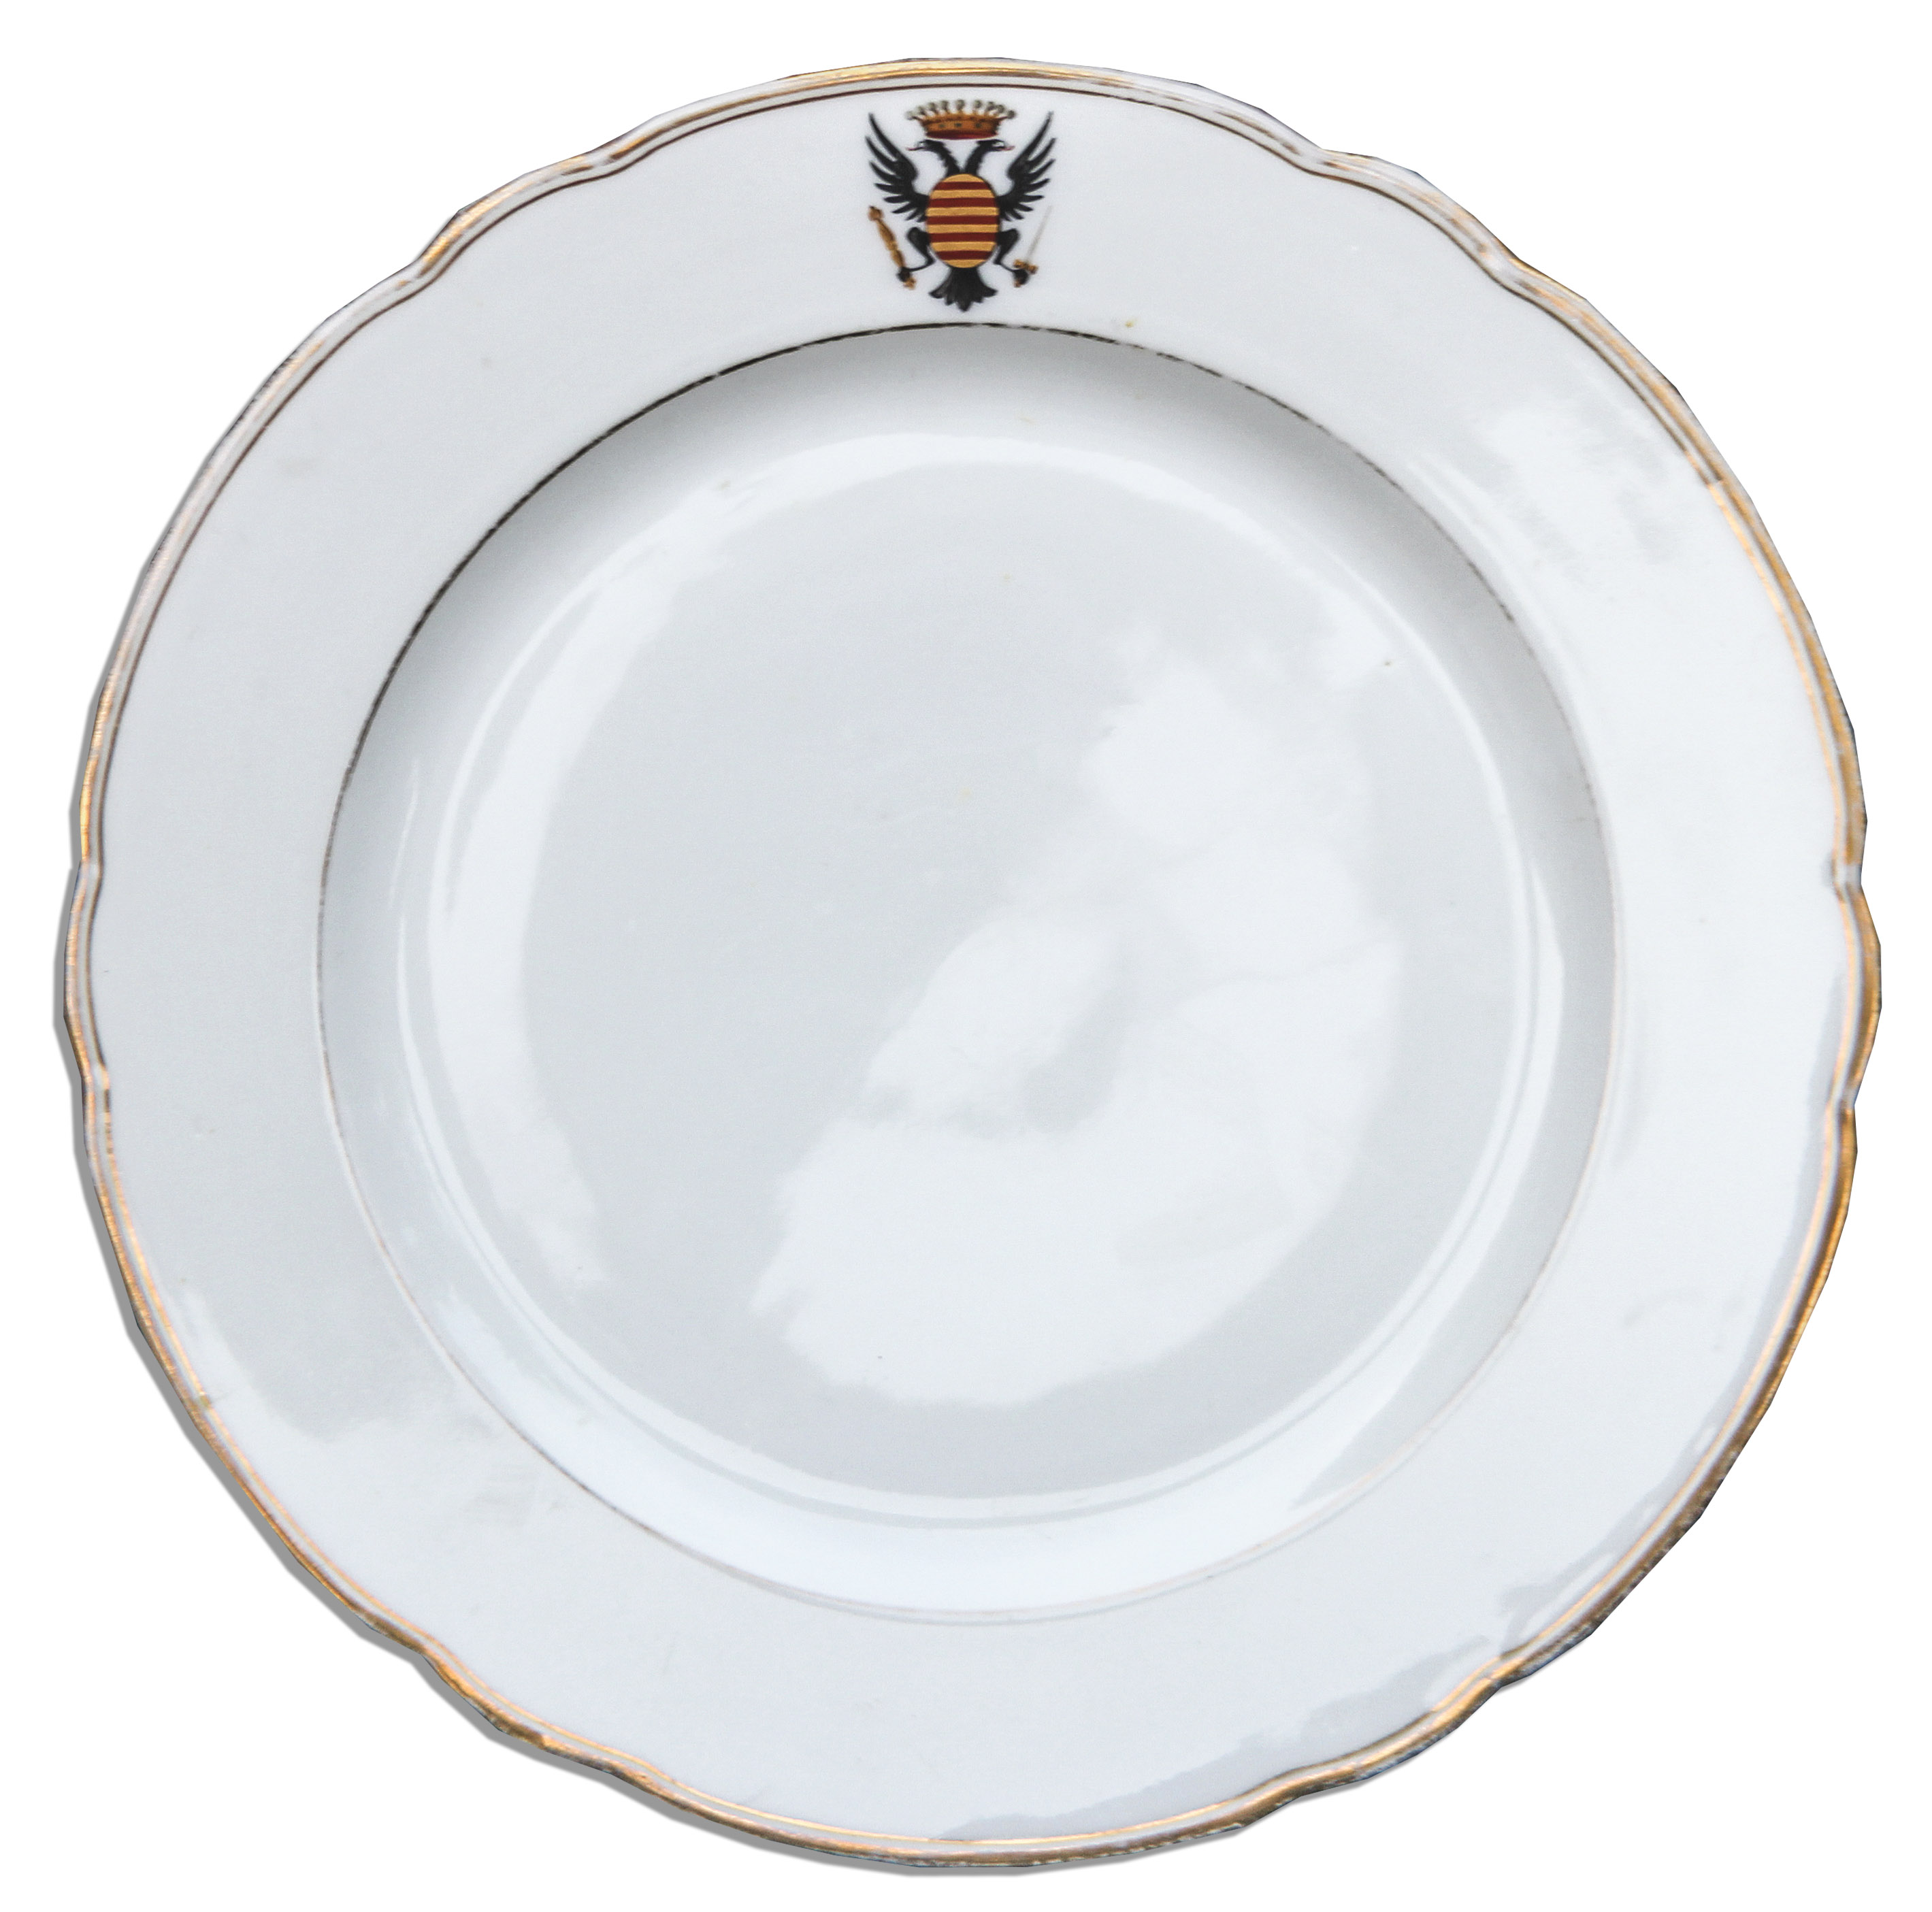 Russian Imperial China Plate -- With the Double-Headed Eagle Coat of Arms ...  sc 1 st  Nate D Sanders & Lot Detail - Russian Imperial China Plate -- With the Double-Headed ...